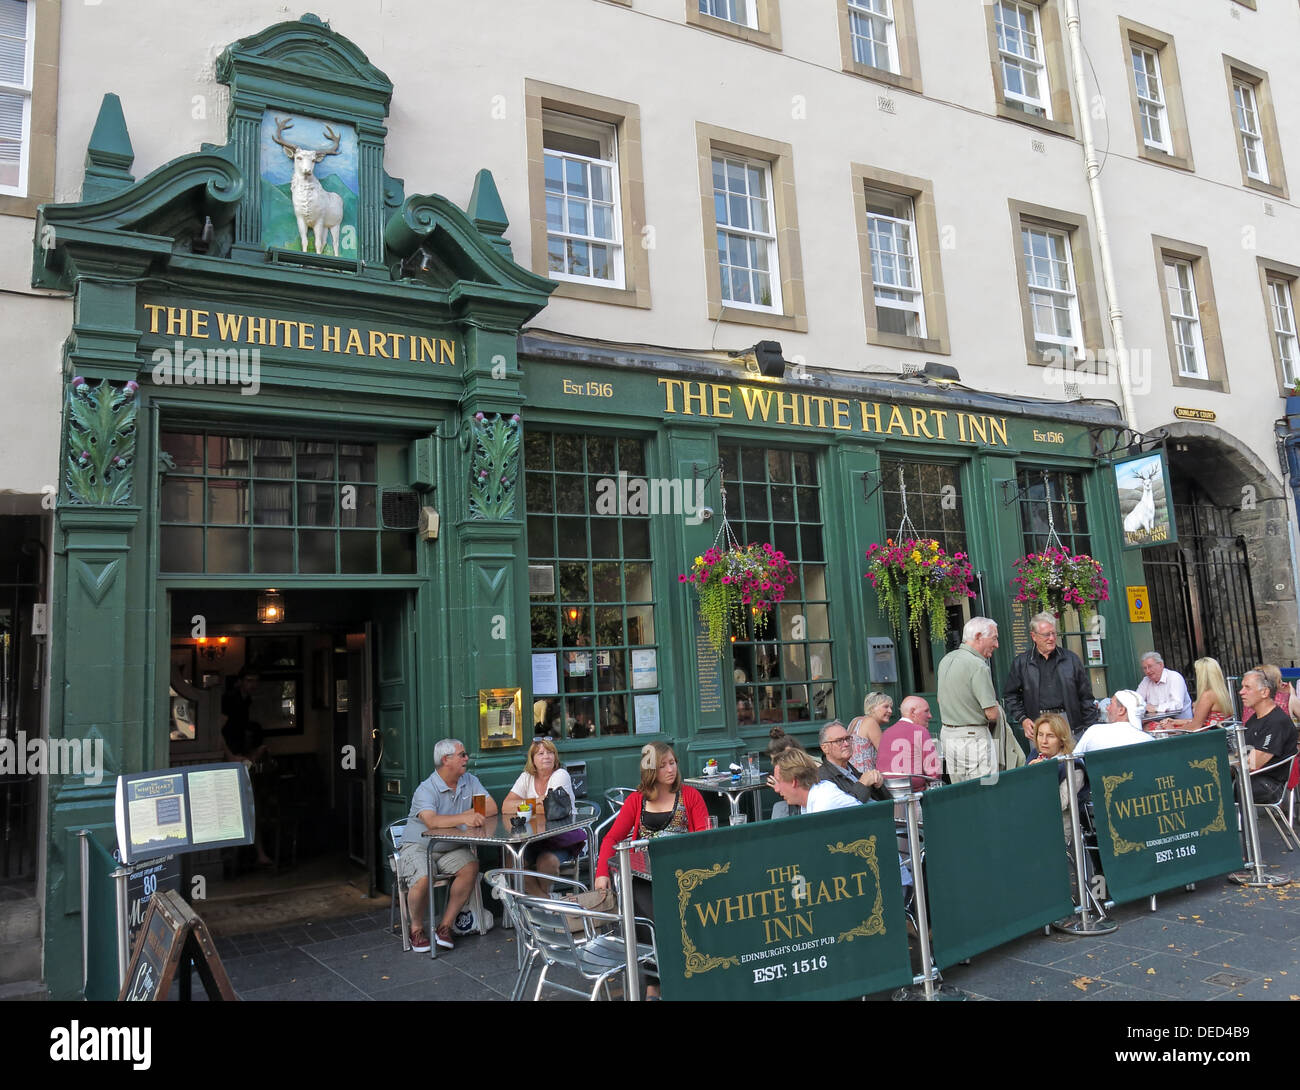 EH1,Scottish,Scot,scots,independance,independence,green,entrance,classic,bar,Grassmarket,square,old,town,city,capital,pubs,pub,food,drink,tourist,tourism,Gotonysmith,Buy Pictures of,Buy Images Of,grub,pub food,capital city,capital city of Scotland sun,sunny,summer,eating out,cafe culture,White Hart,old town,historic,history,Edinburgh History,Edinburghs history